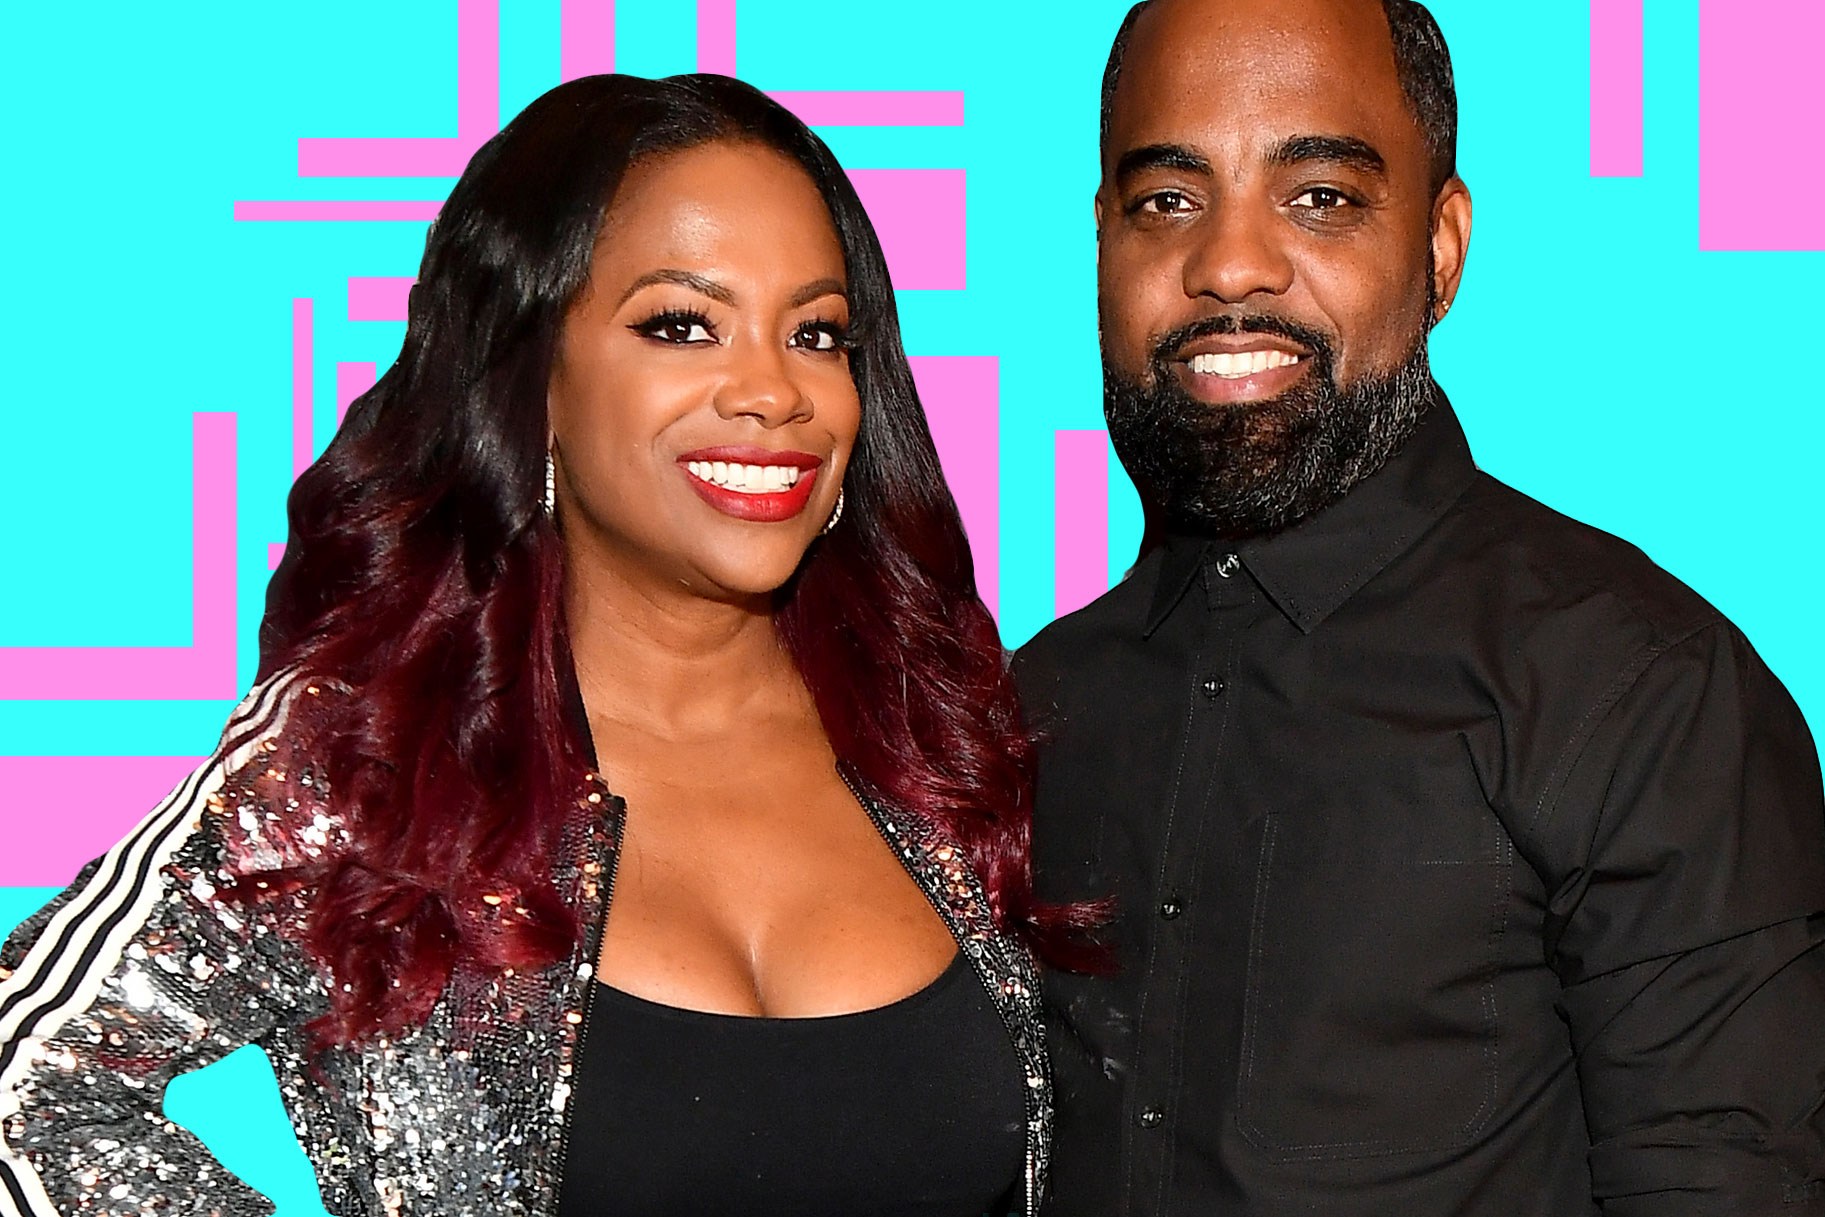 Kandi Burruss' Husband, Todd Tucker Announces An Exciting Event For The End Of The Month